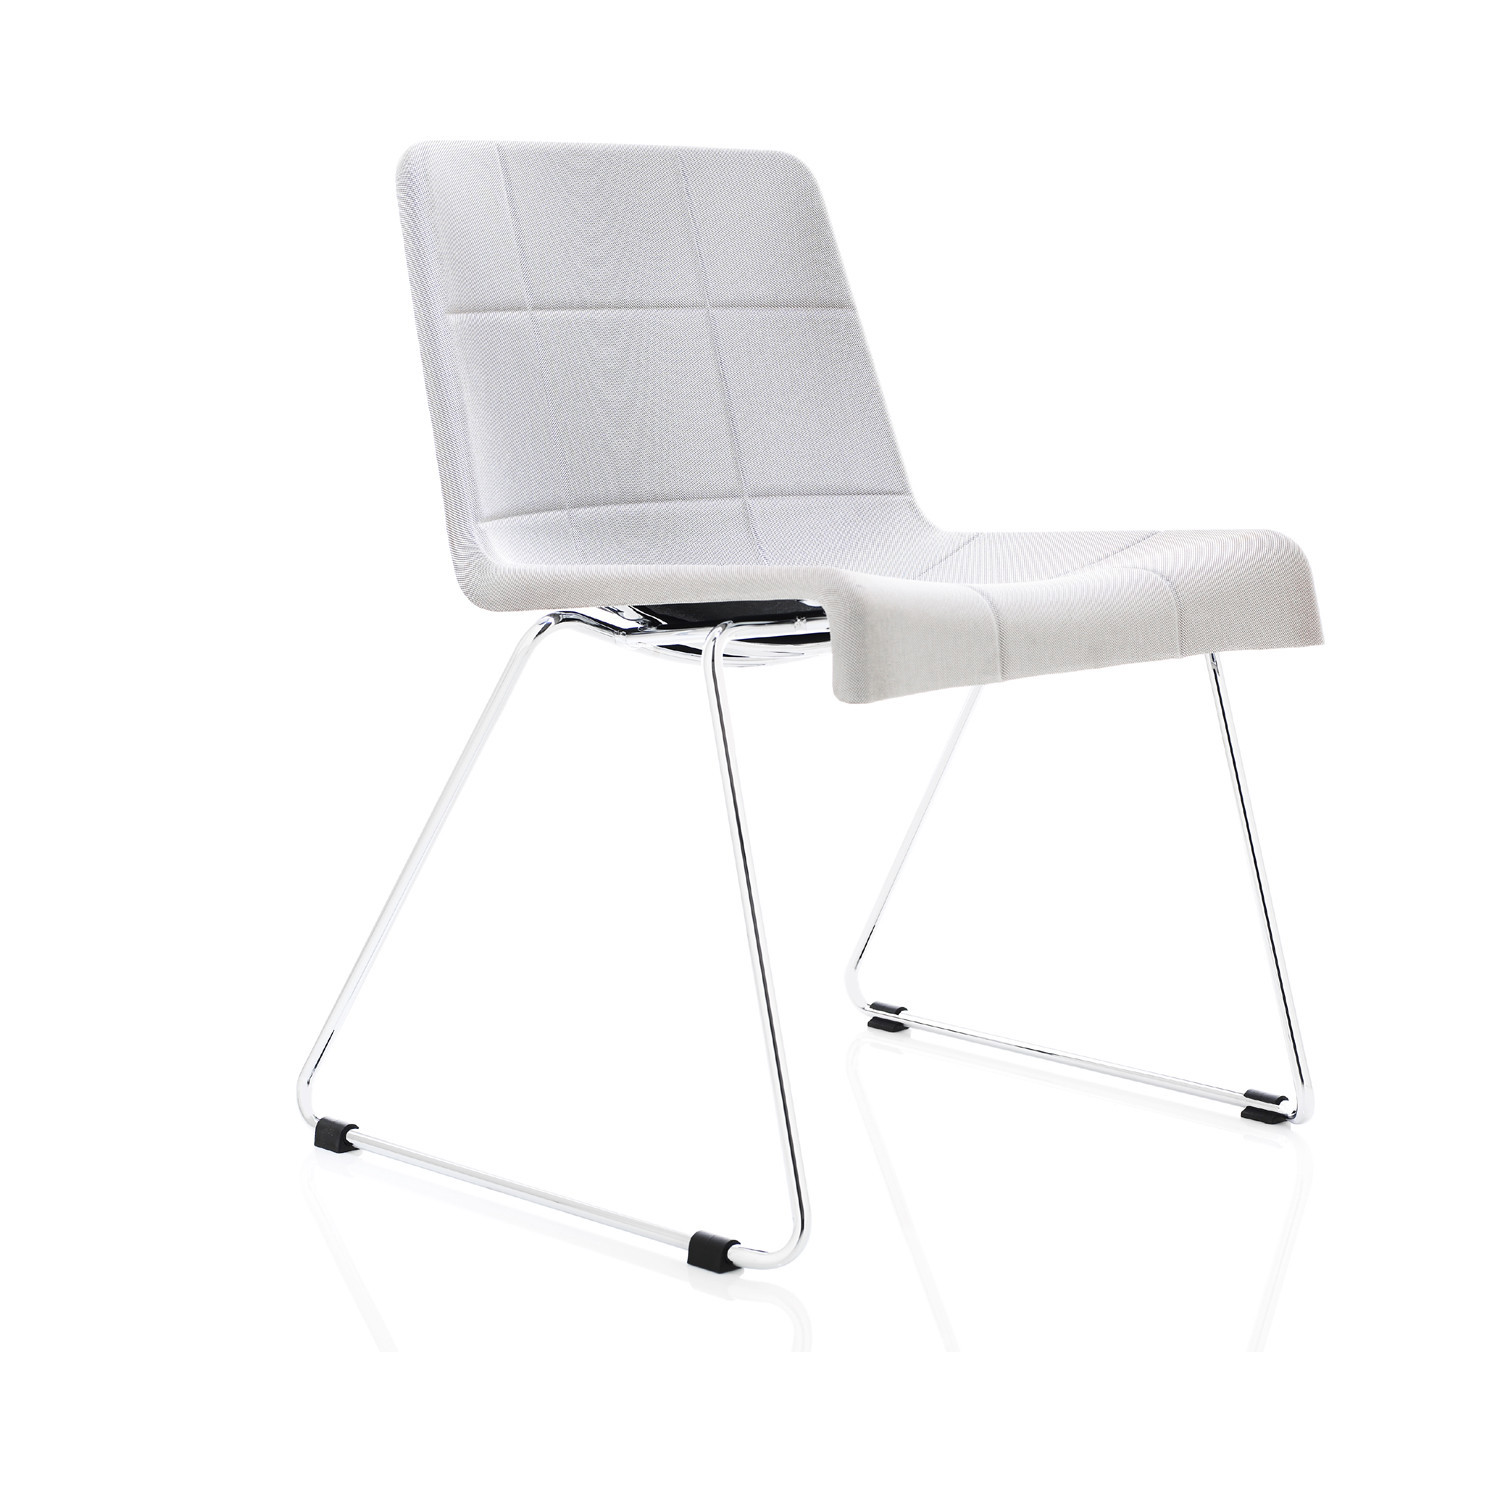 Millibar Lounge Chair on sled base